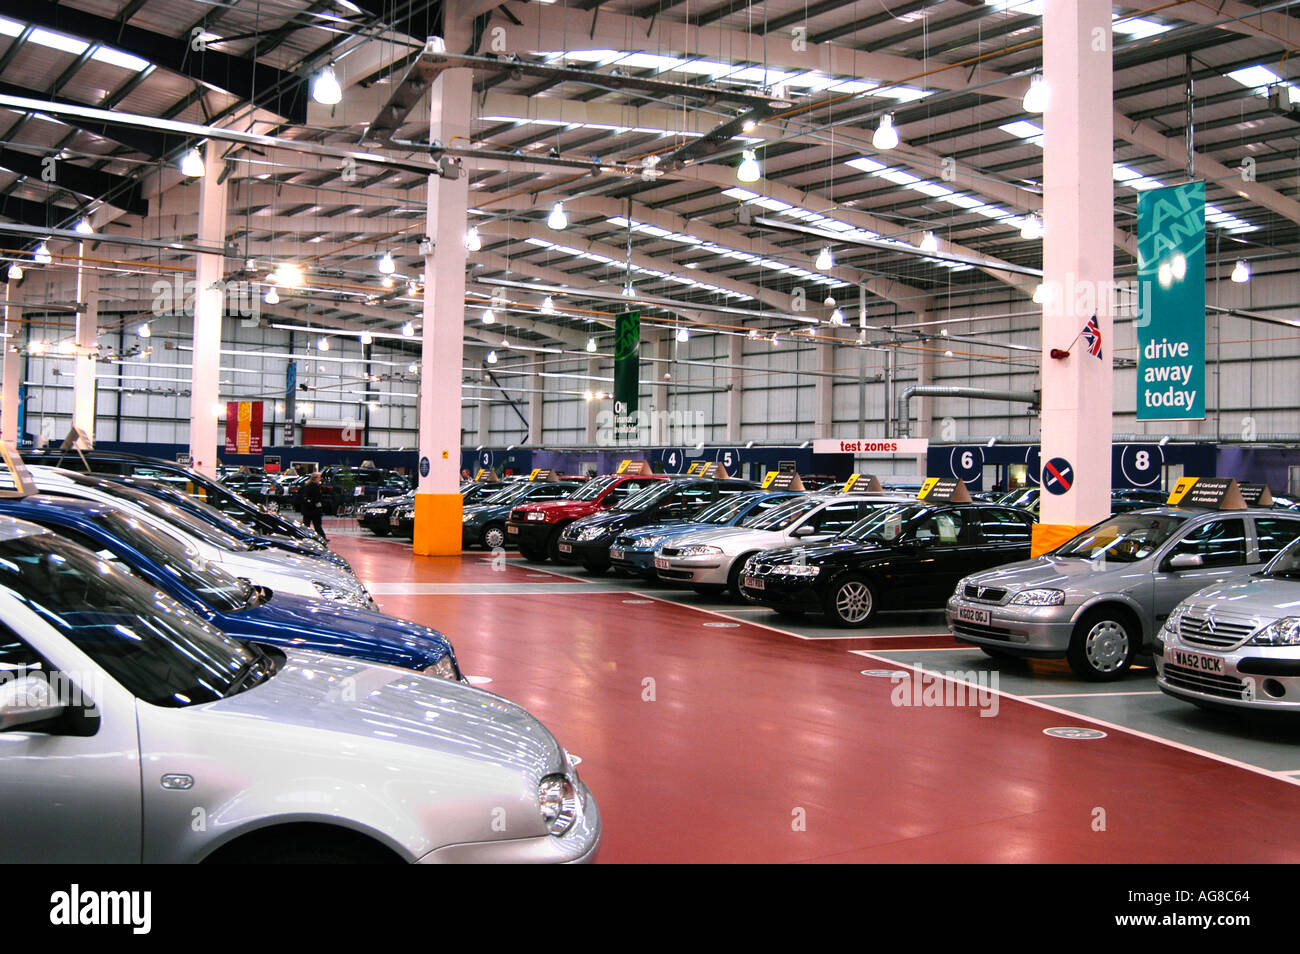 Secondhand Cars Sale England Stock Photos & Secondhand Cars Sale ...